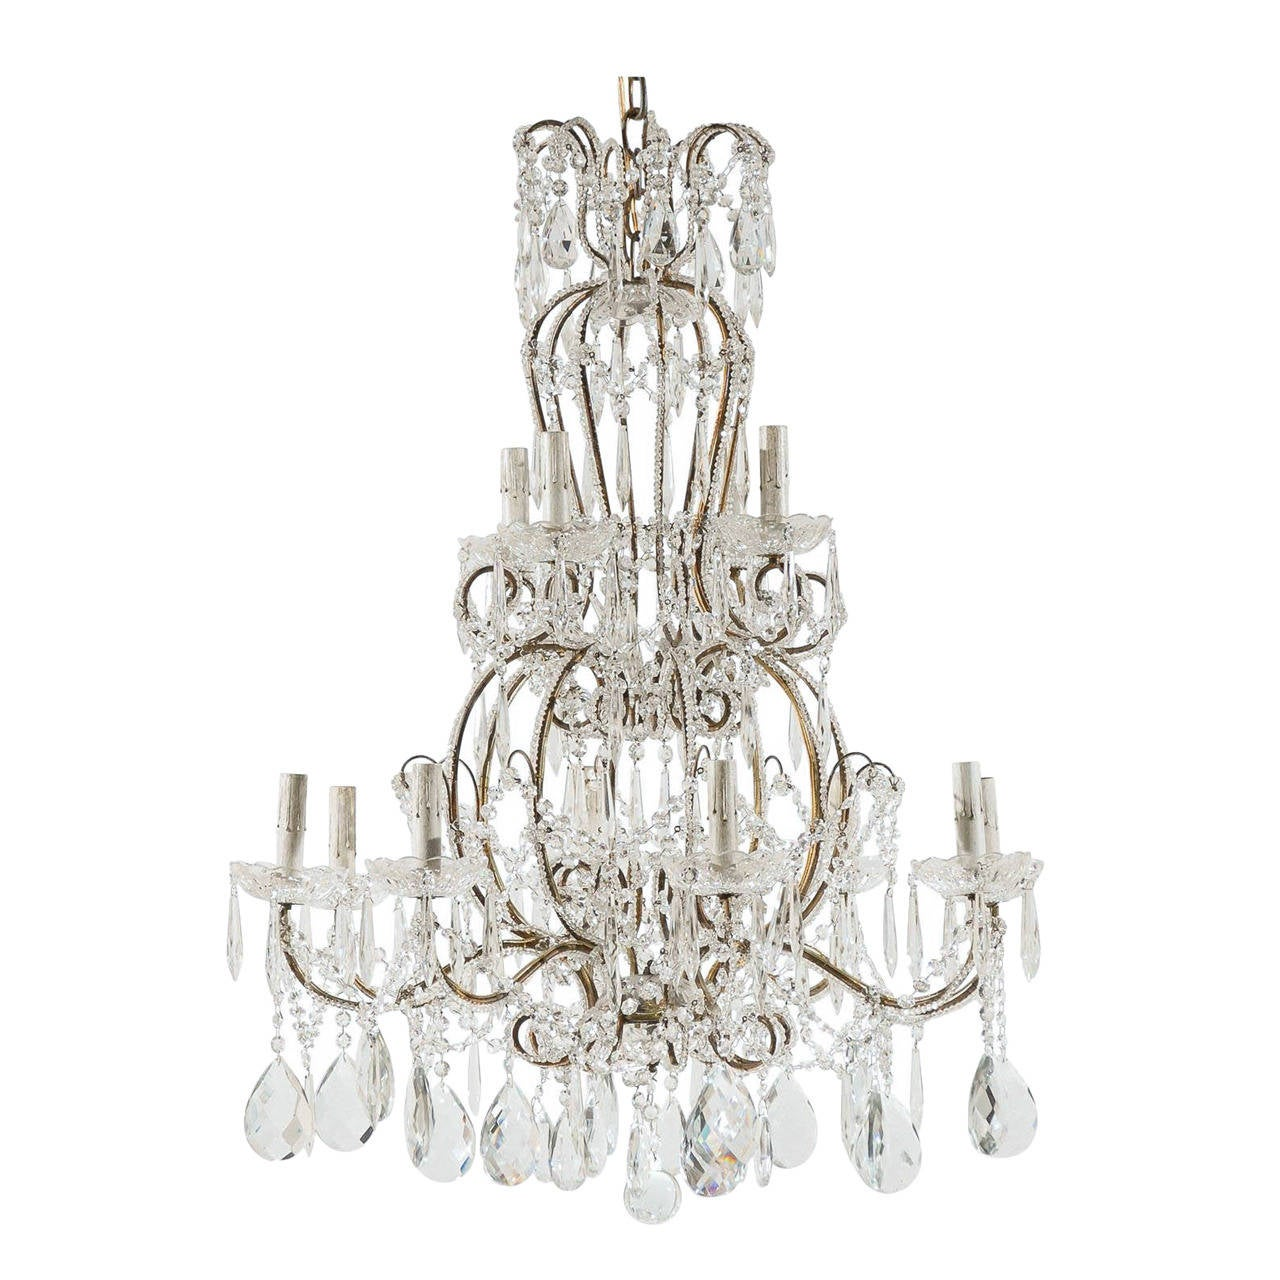 Italian Vintage twelve-Light Crystal Chandelier with Scroll Arms